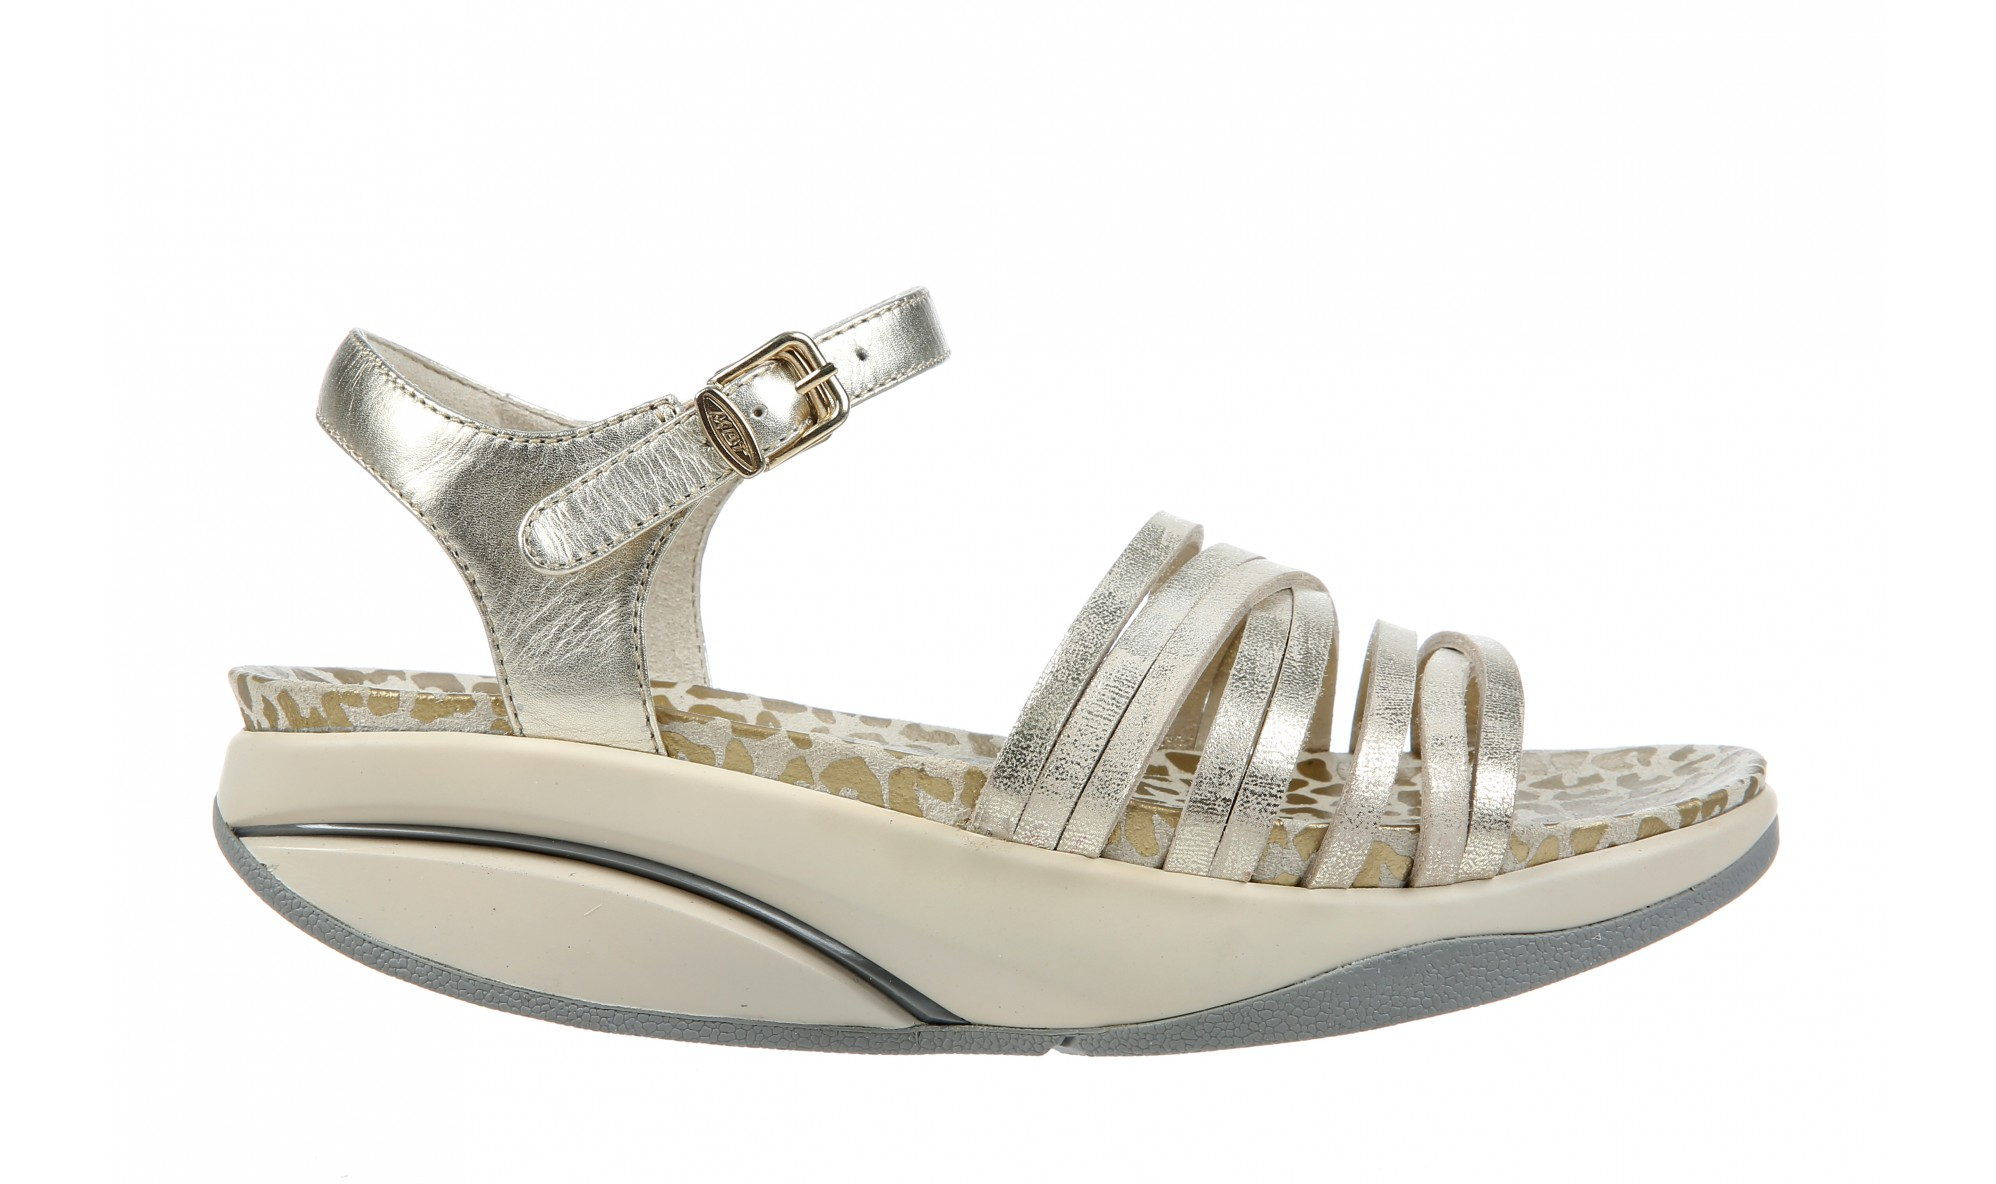 MBT Kaweria 6 Women's Sandal Gold